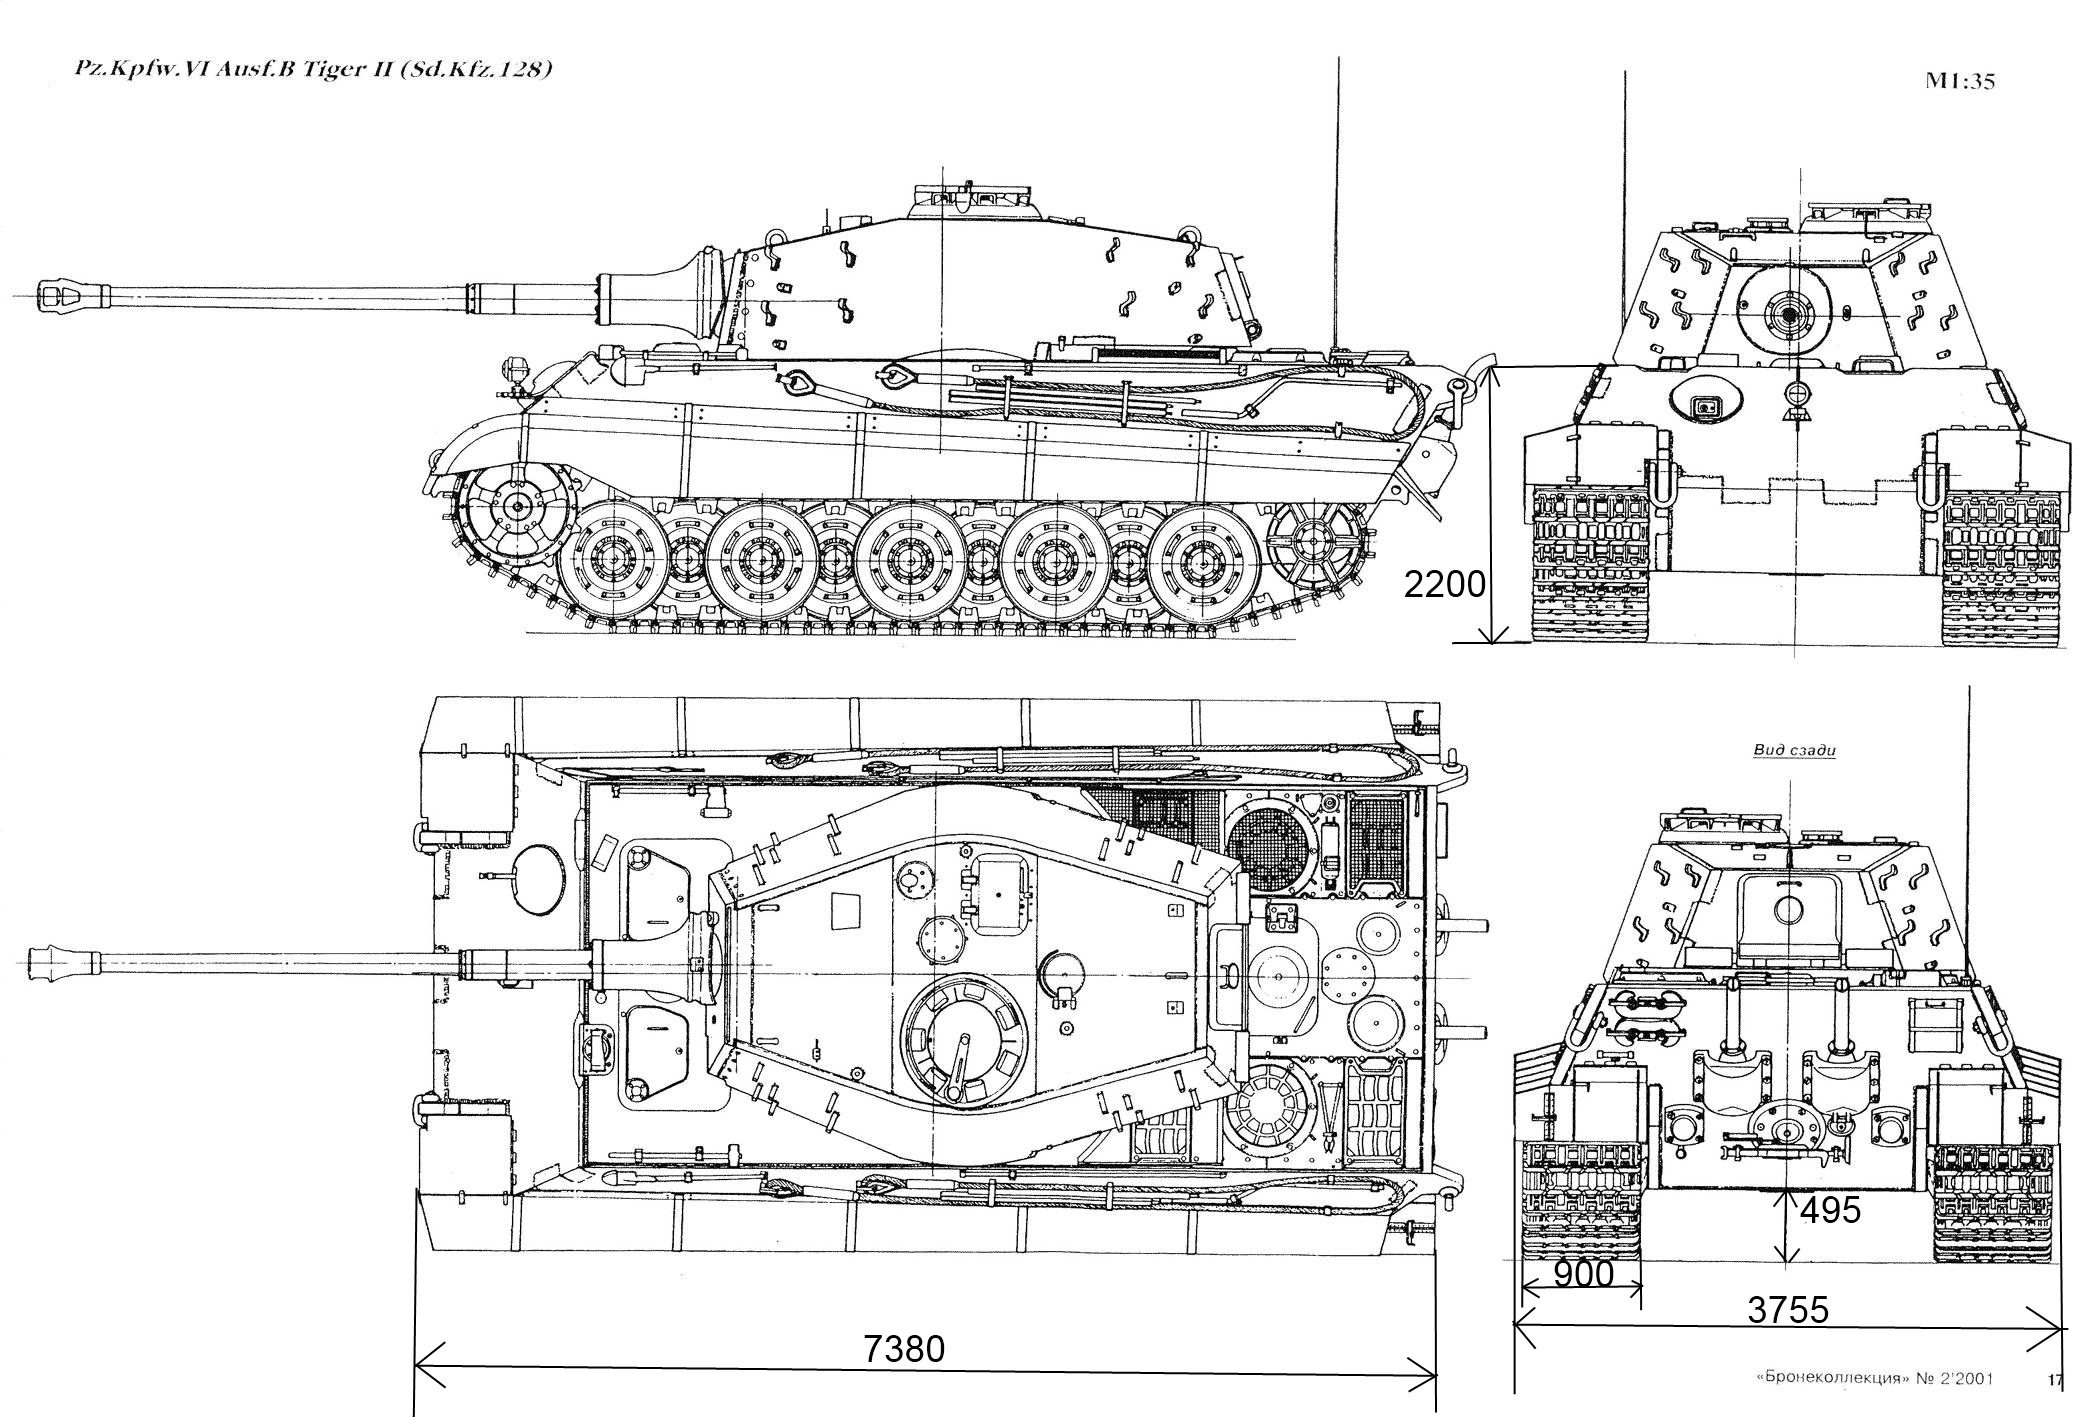 Tiger II Blueprint - Download free blueprint for 3D modeling